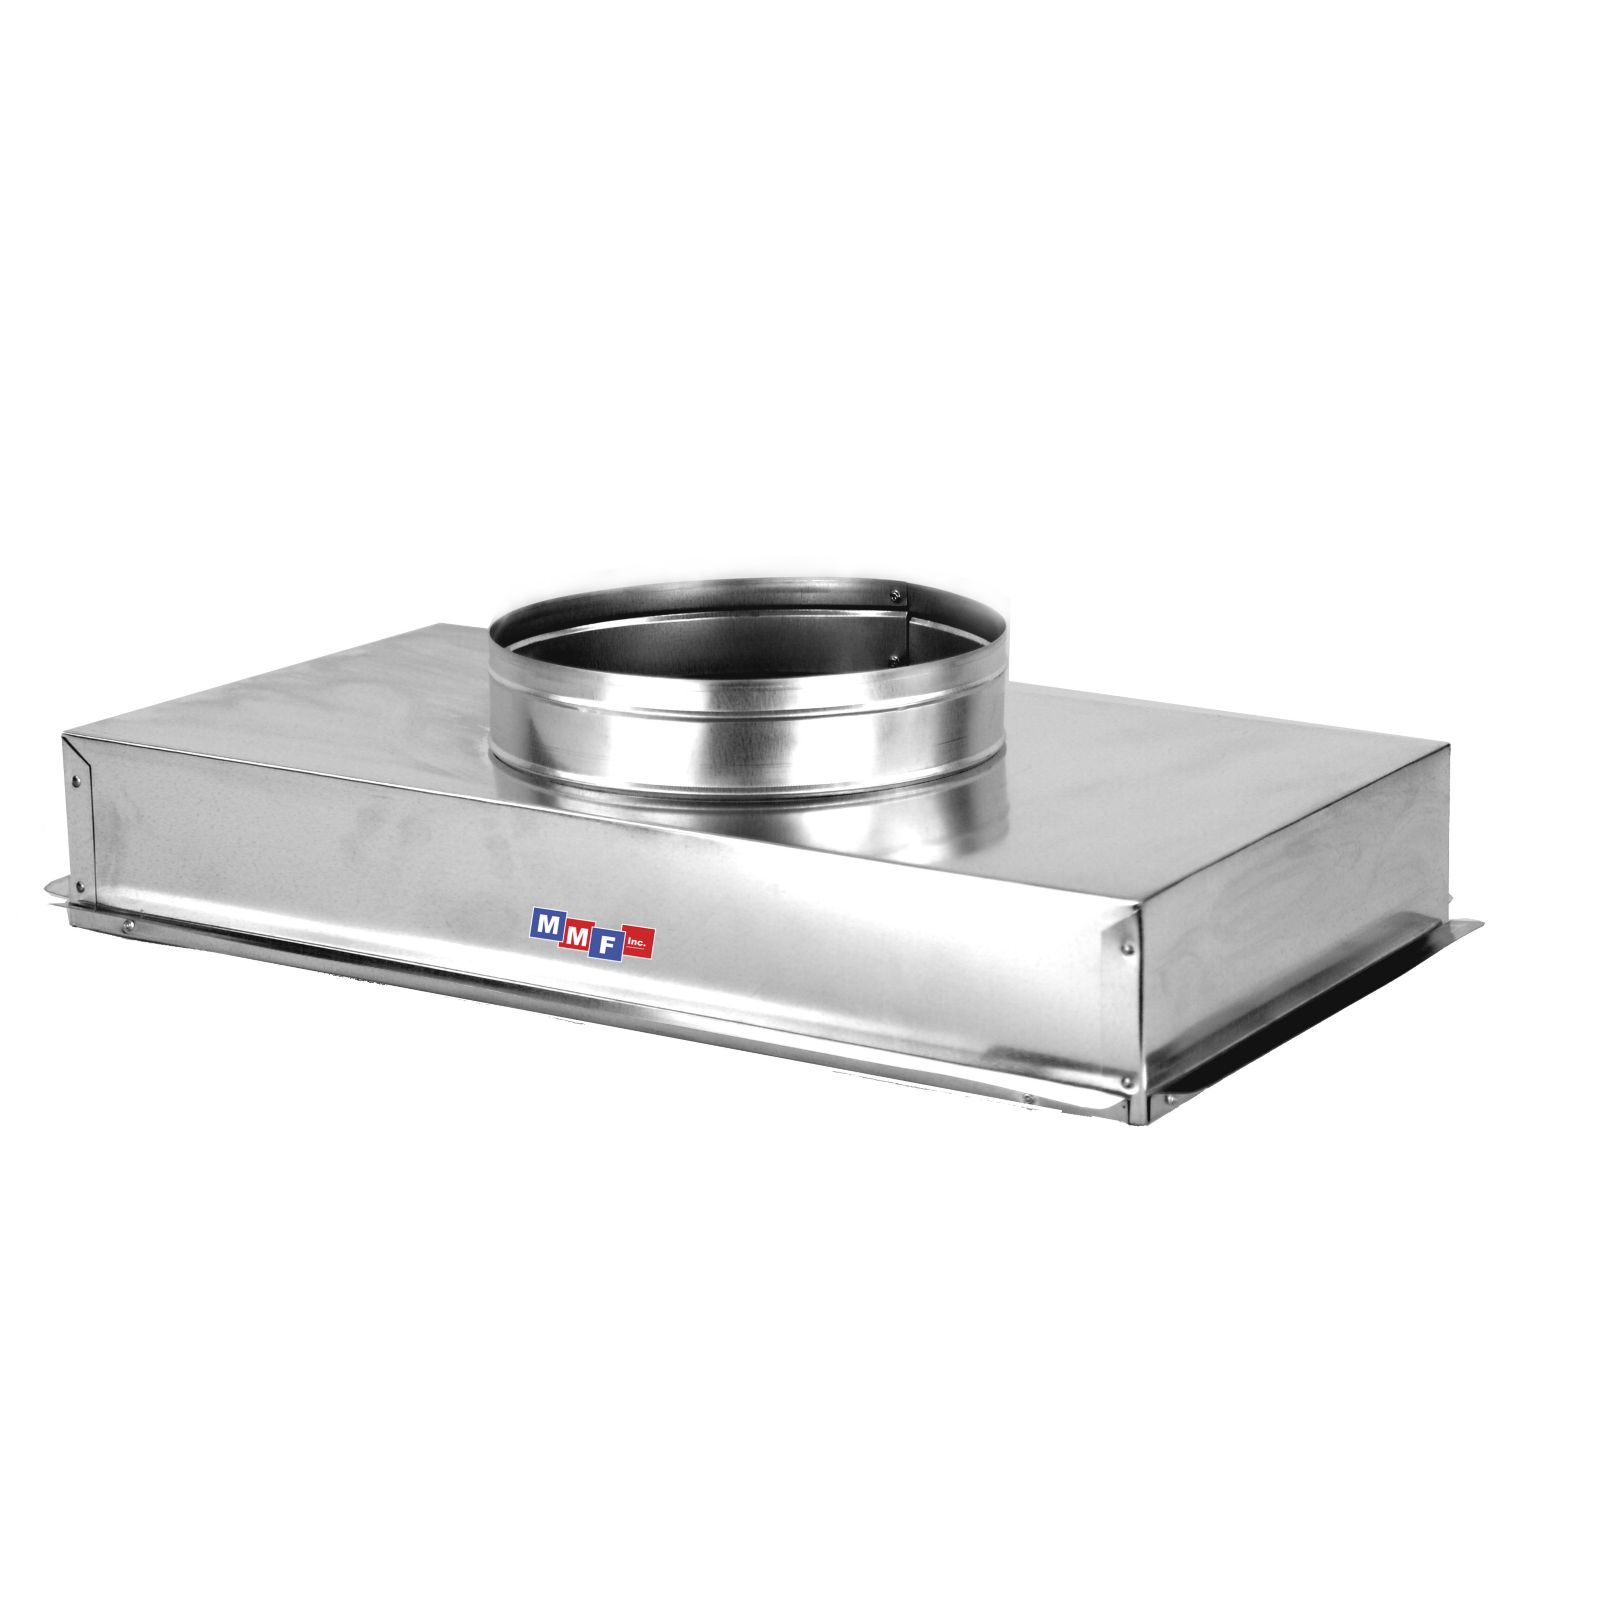 "Modular Metal ACRI2014HS - Return Air Can - 26 Ga - Seal All Seams 20 1/4"" X 14 1/4"" Uninsulated - 6"" High"